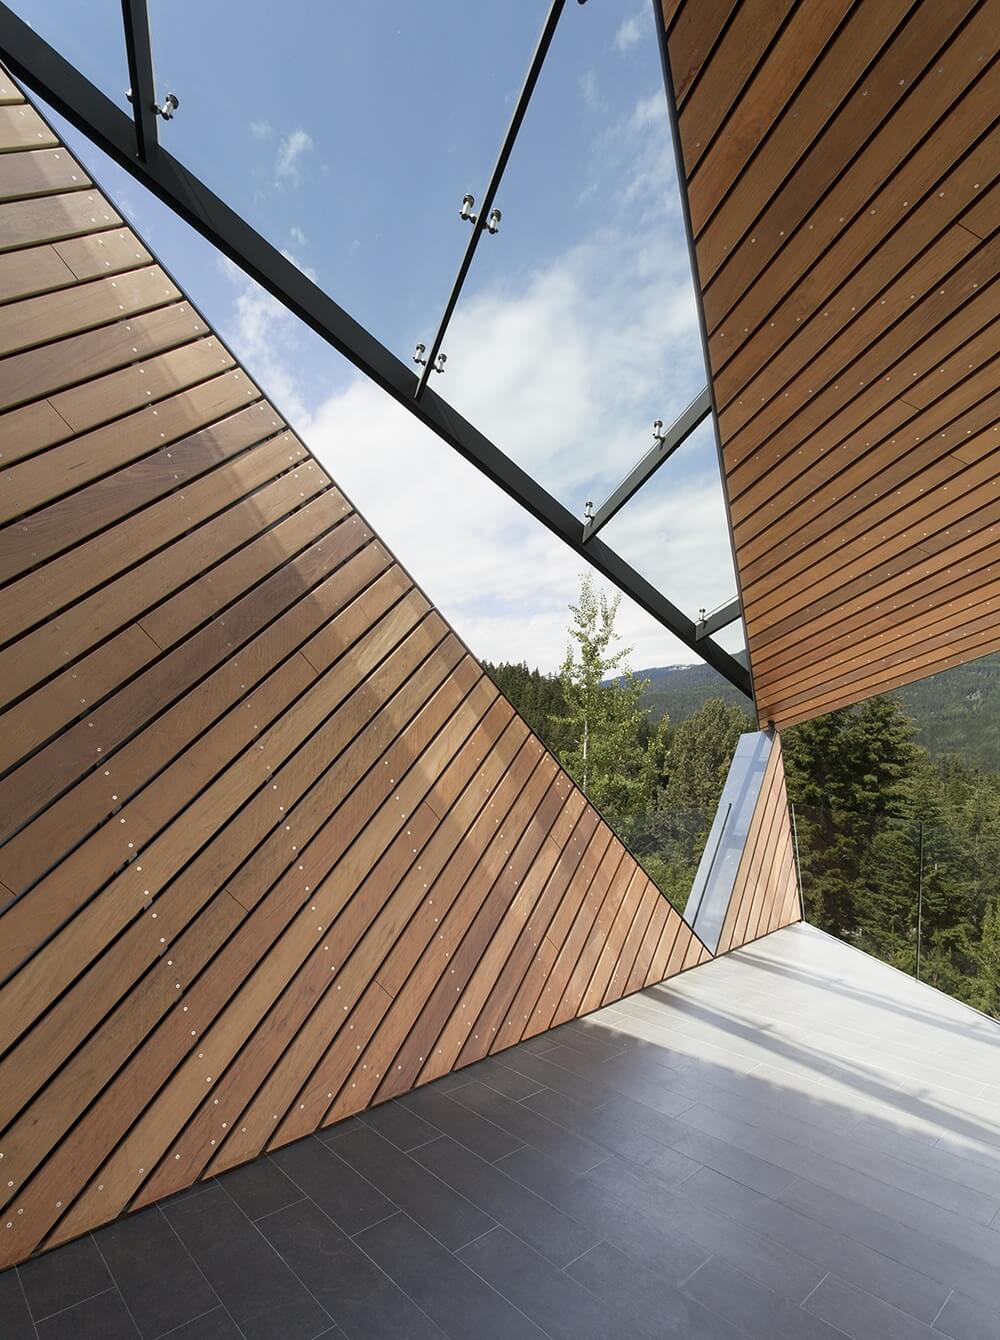 On the other side of the deck we can see the way the glass panels meet the sides and roof of the home in a dazzling angular fashion.